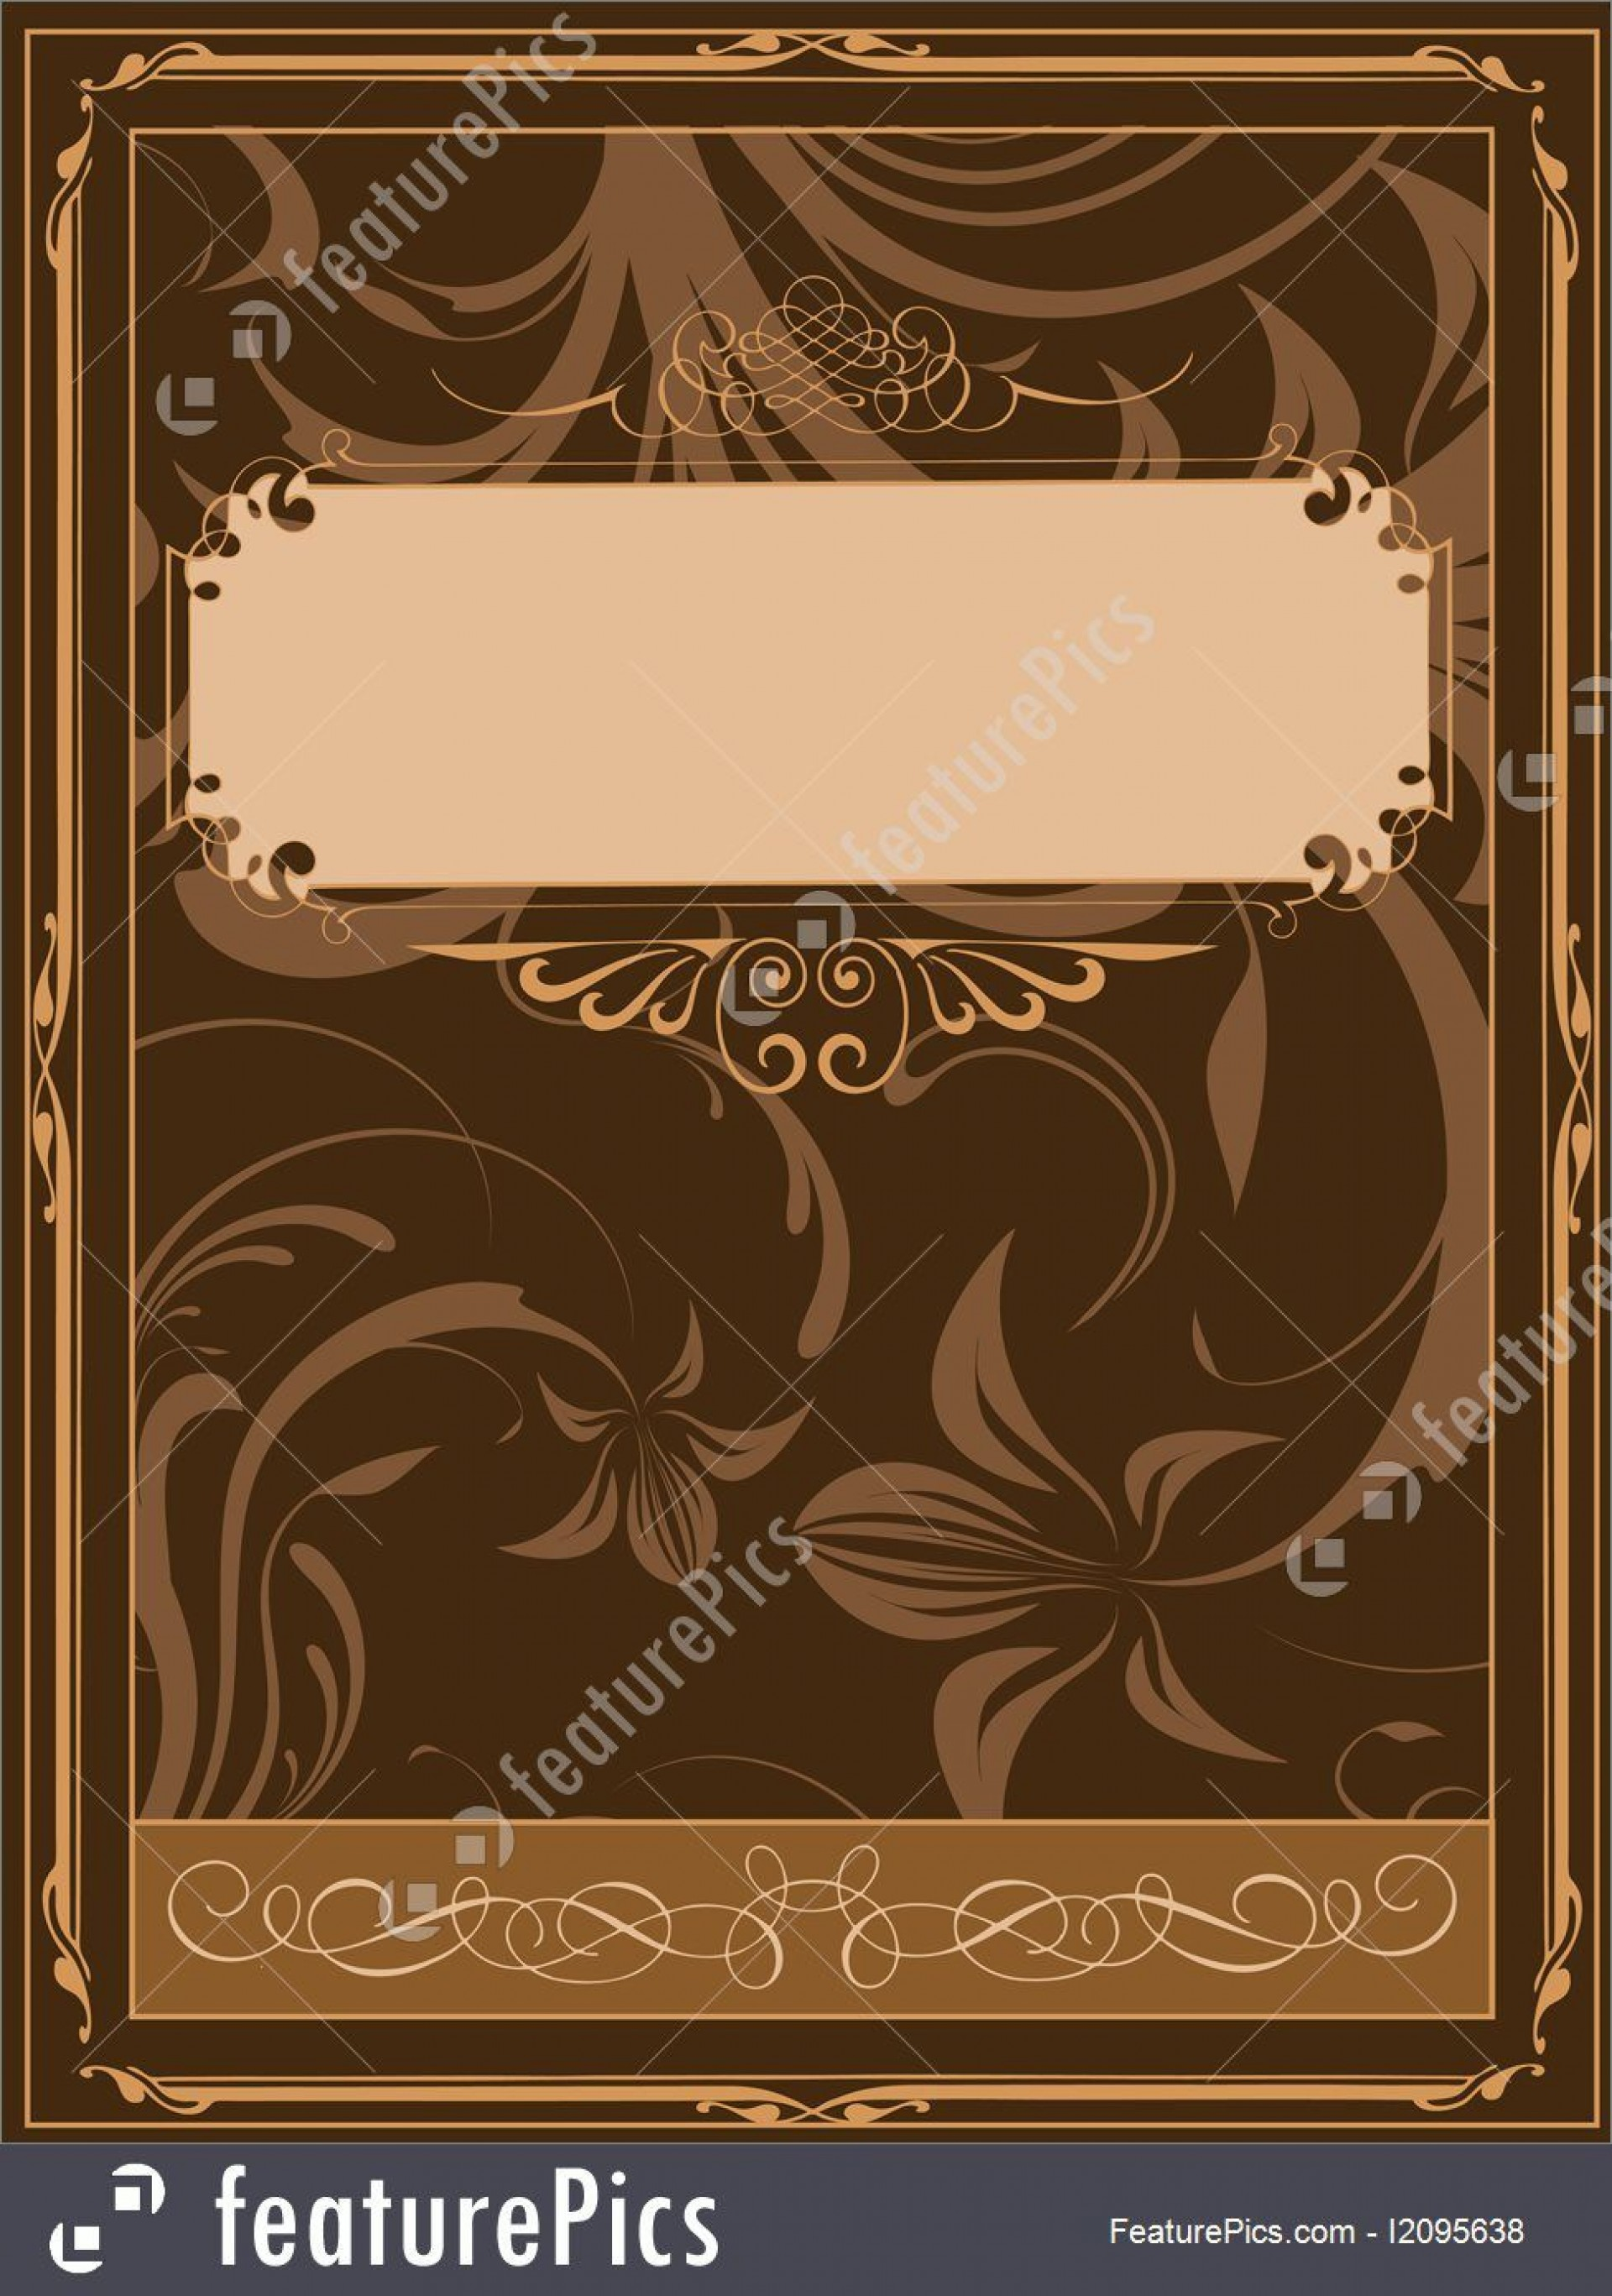 009 Wonderful Old Book Cover Template Design  Fashioned Word1920